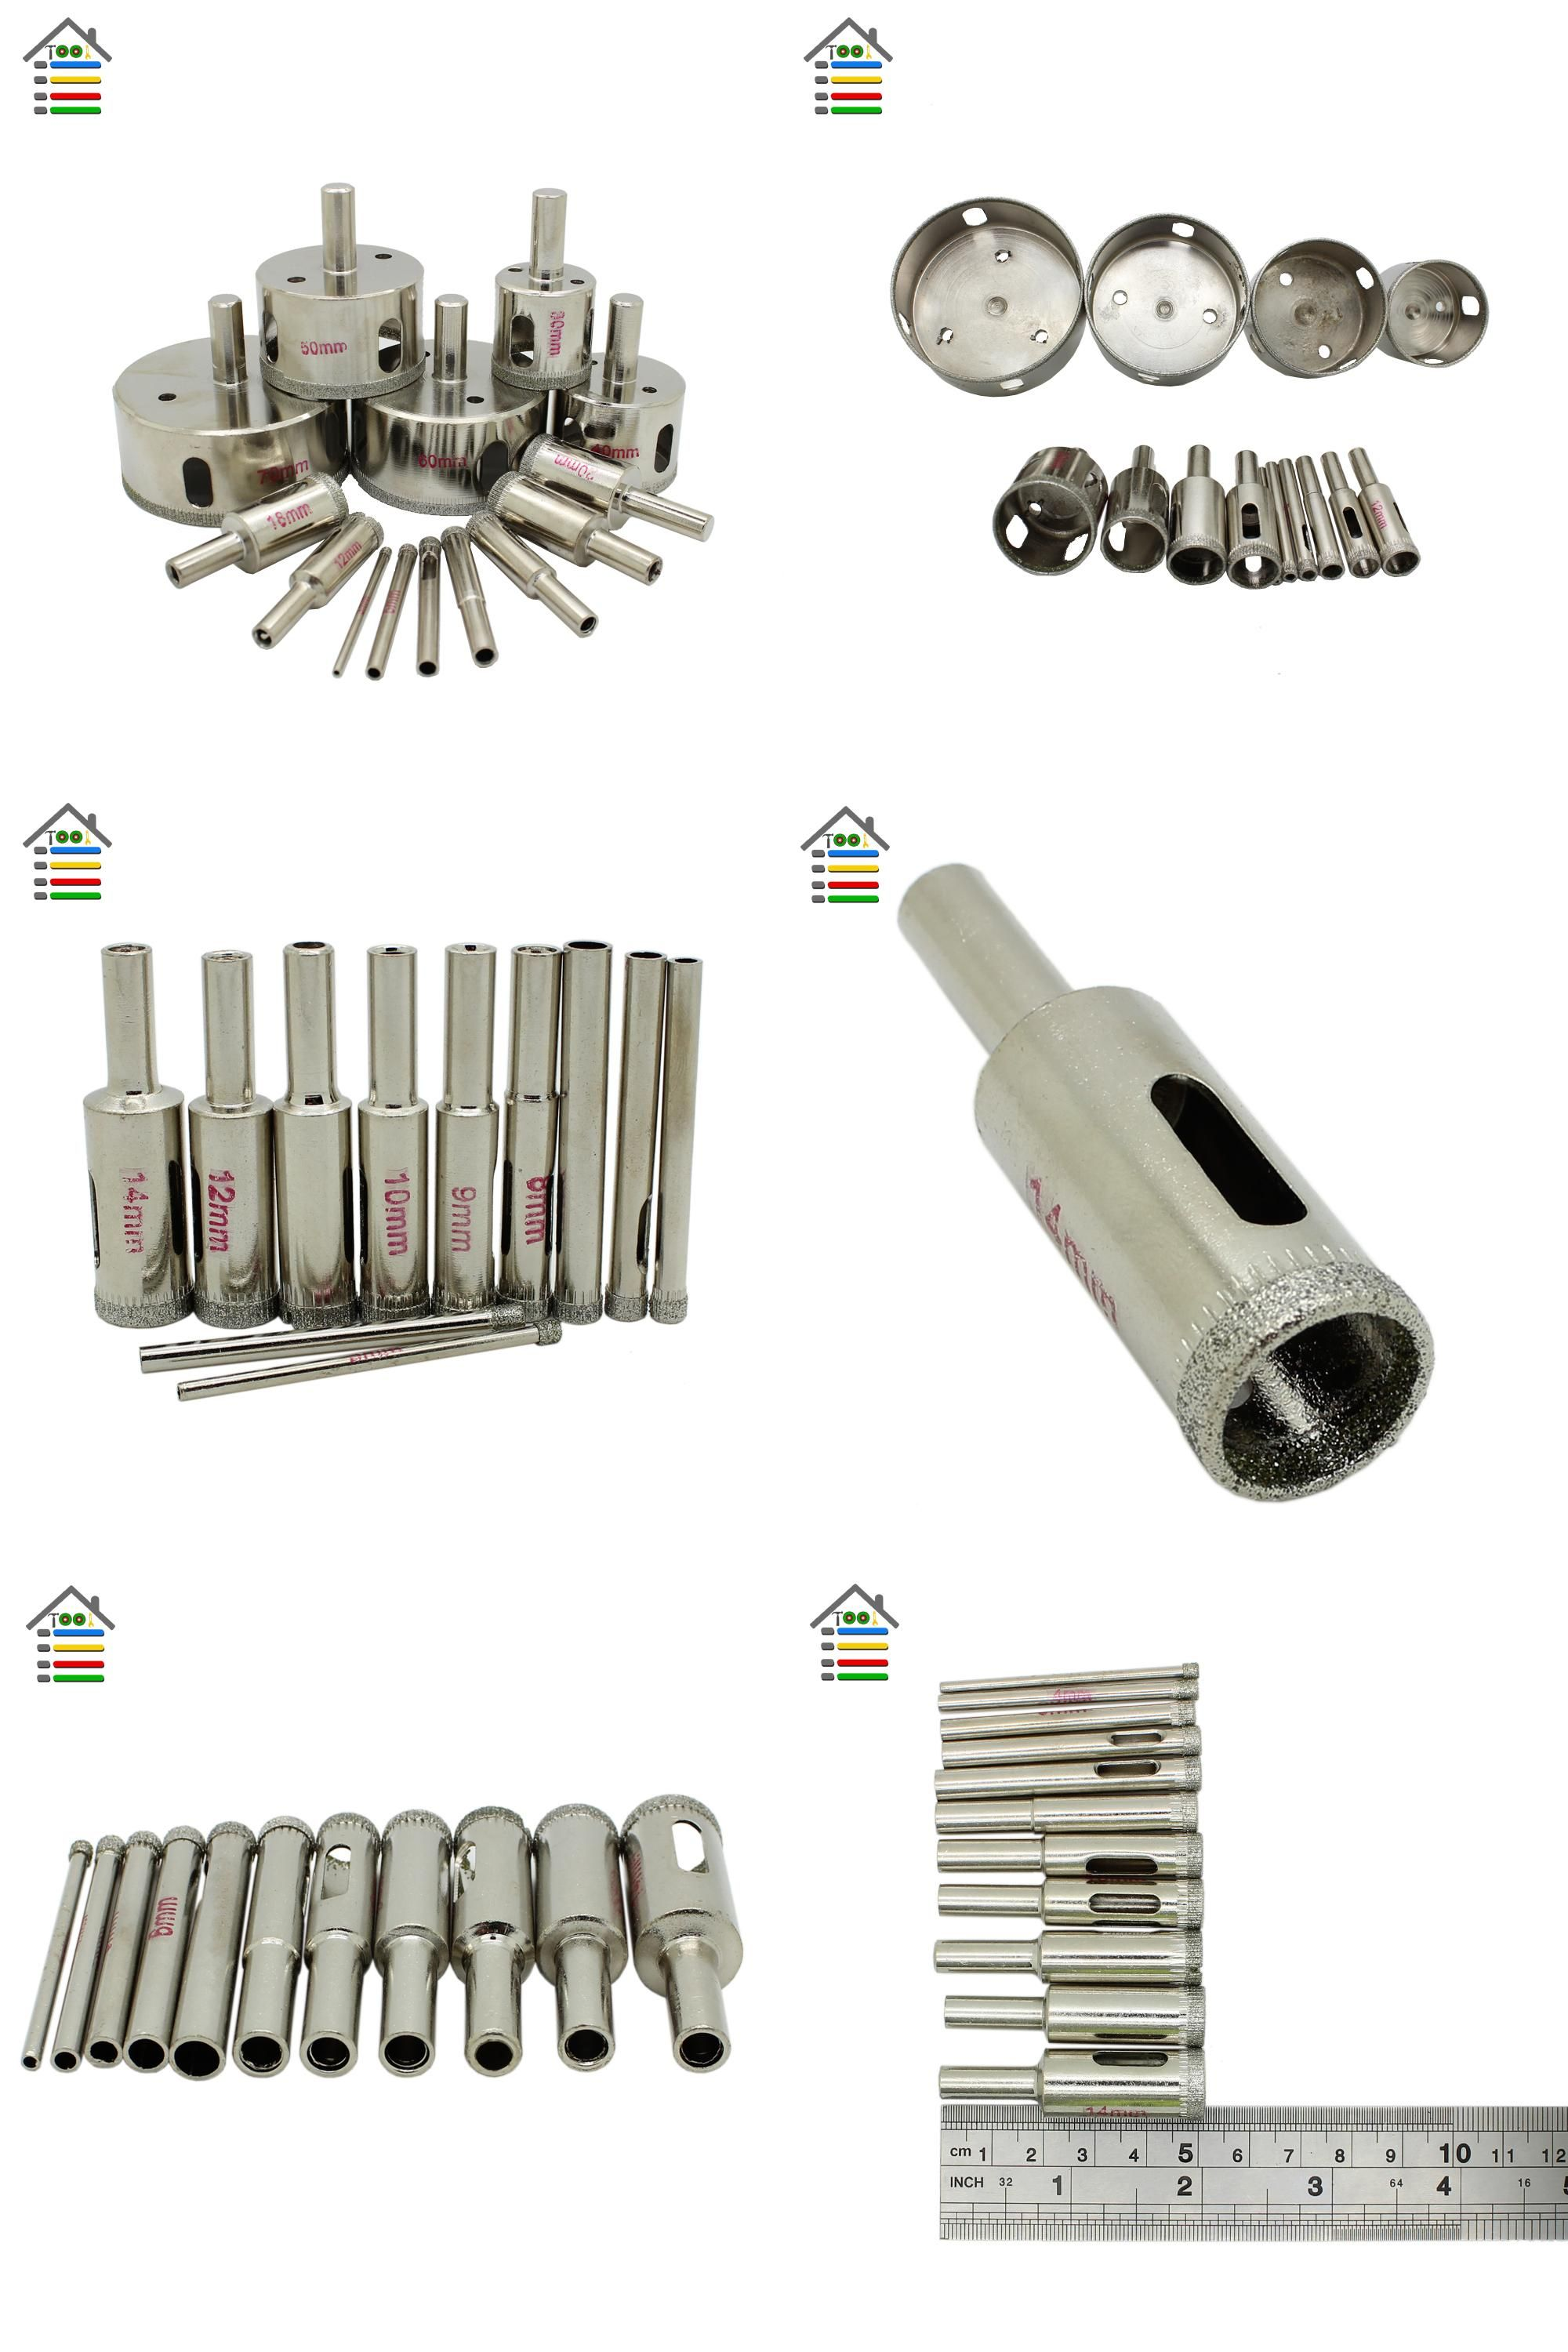 Visit To Buy Autotoolhome 1pc Diamond Coated Core Drill Bit Tile